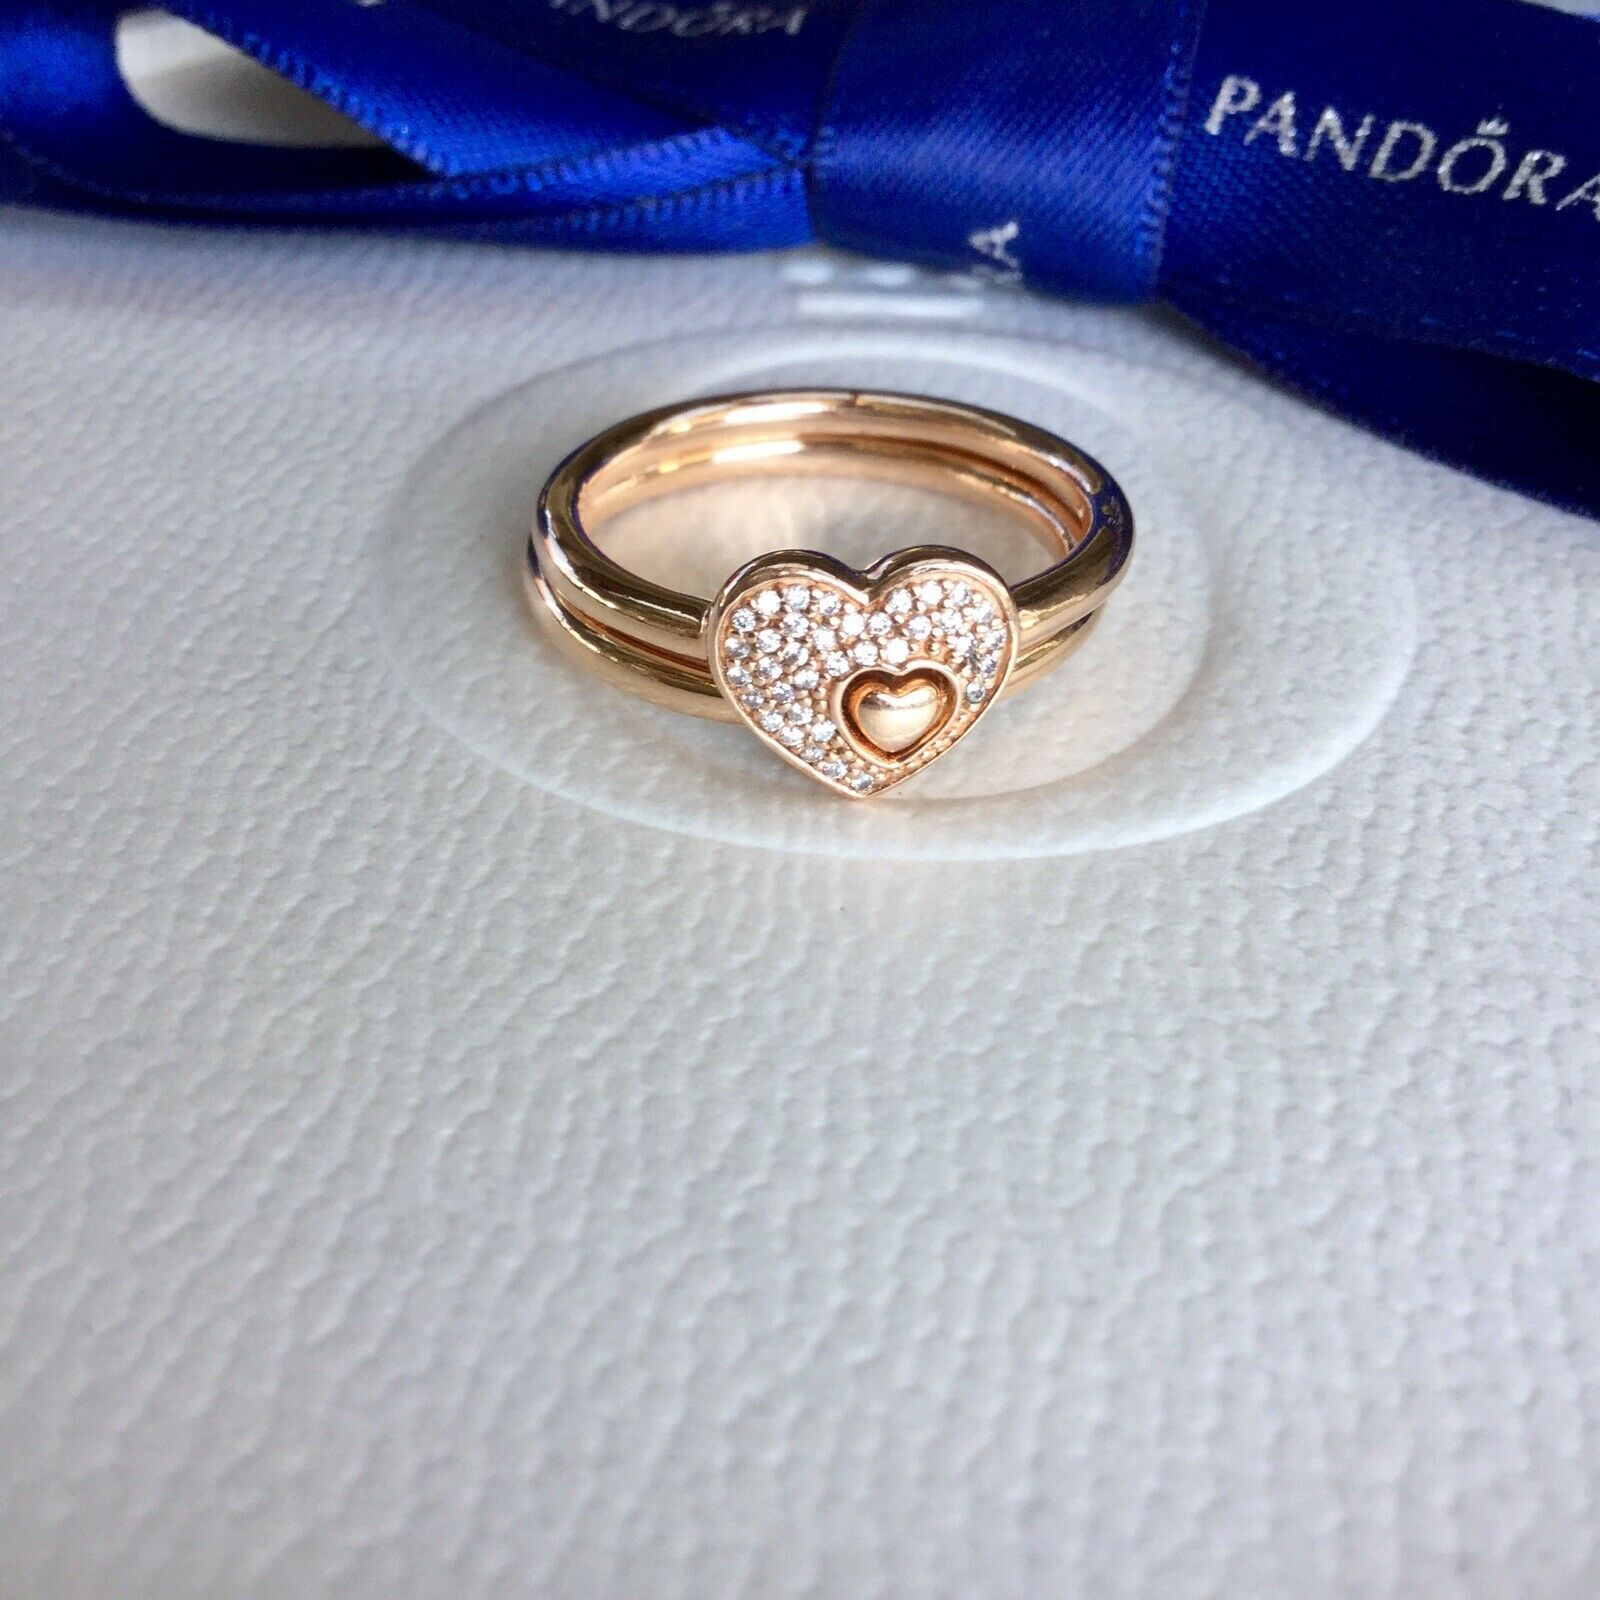 Authentic Pandora Rose Gold Shimmering Puzzle Heart Cz Ring Set Sz 56  #186550Cz Pertaining To Latest Shimmering Feather Rings (View 5 of 25)